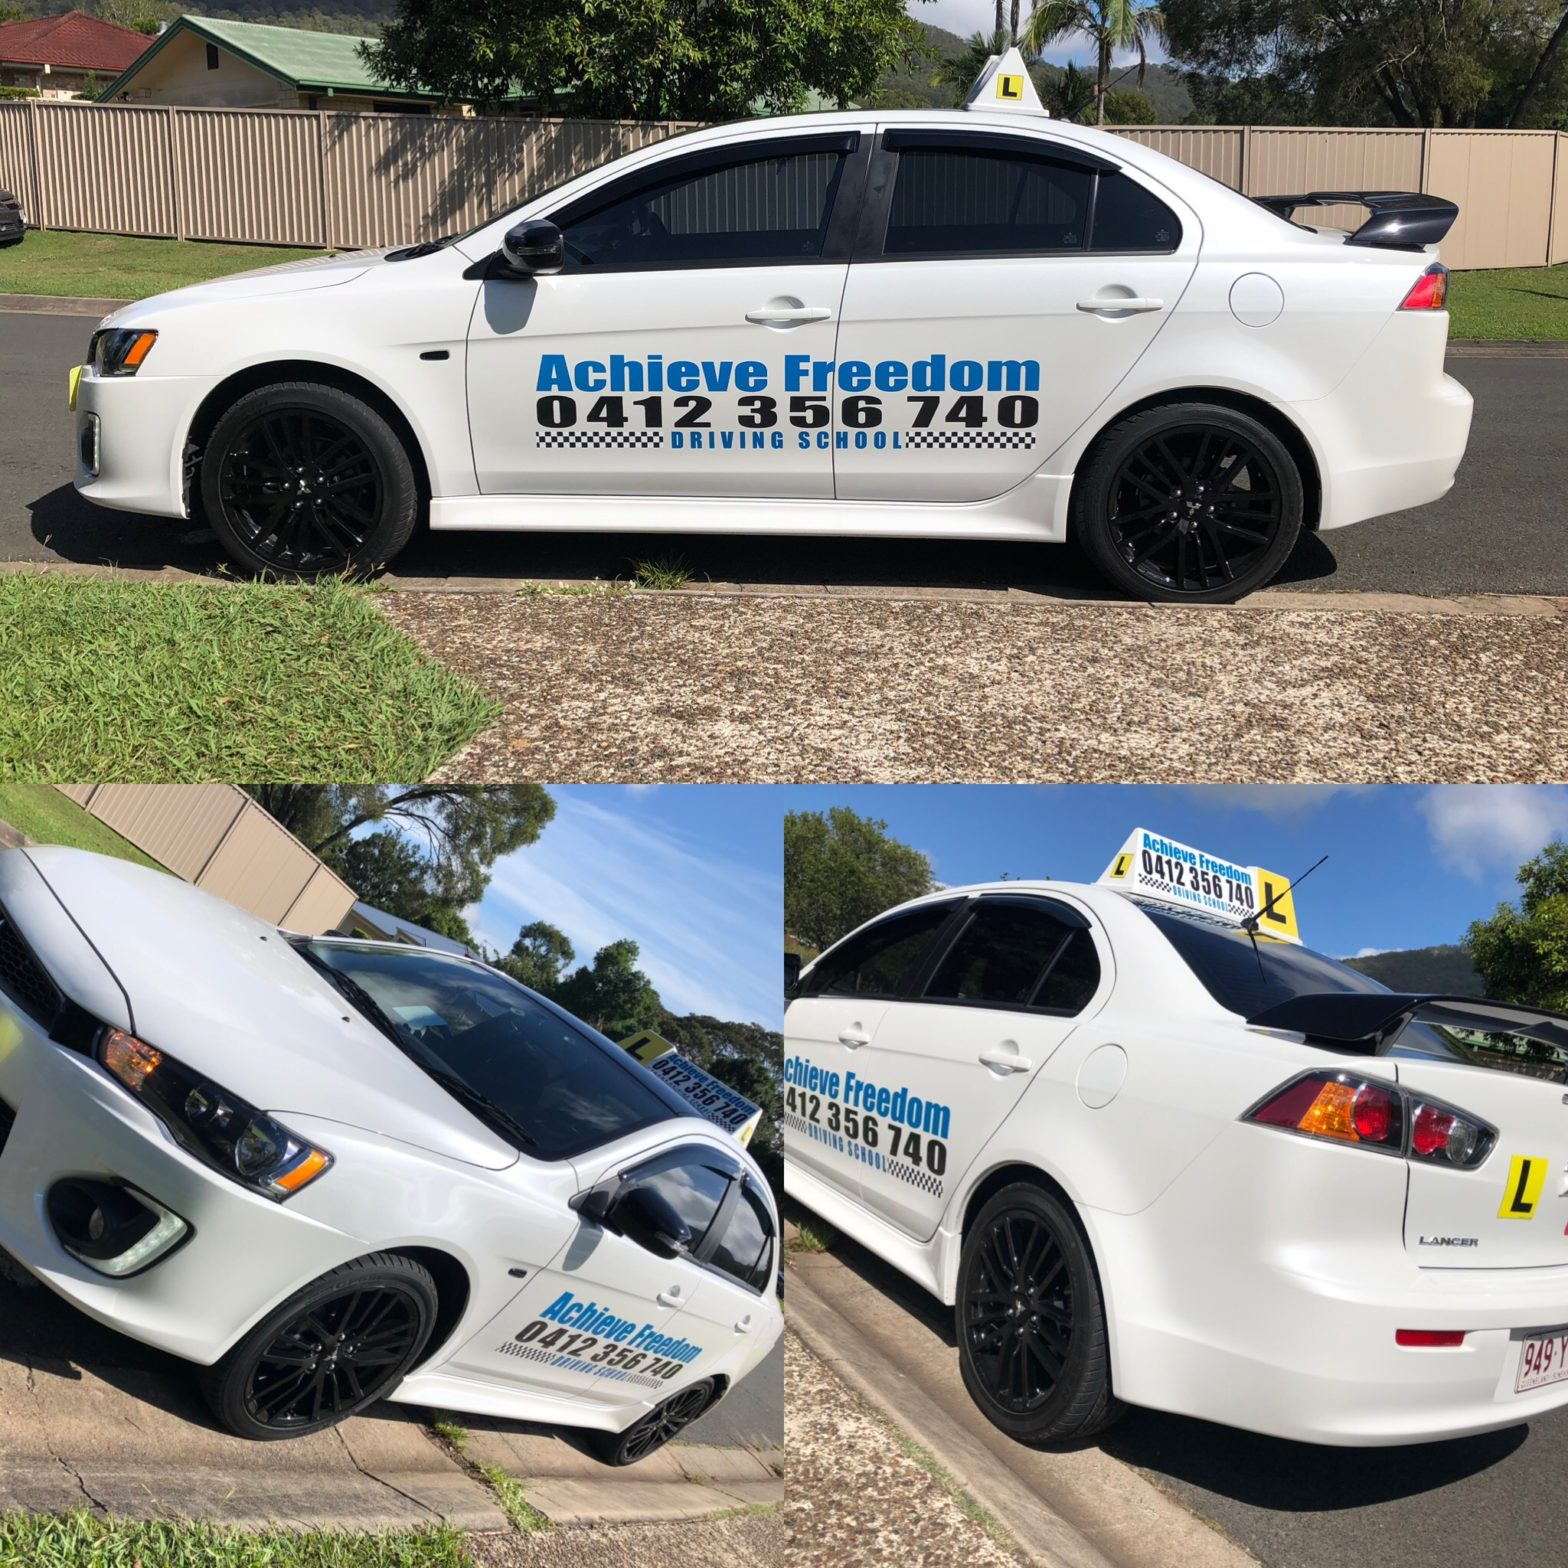 Achieve Freedom Driving School has Recently Grown its Presence as a Driving School on the Gold Coast and Surrounding Areas